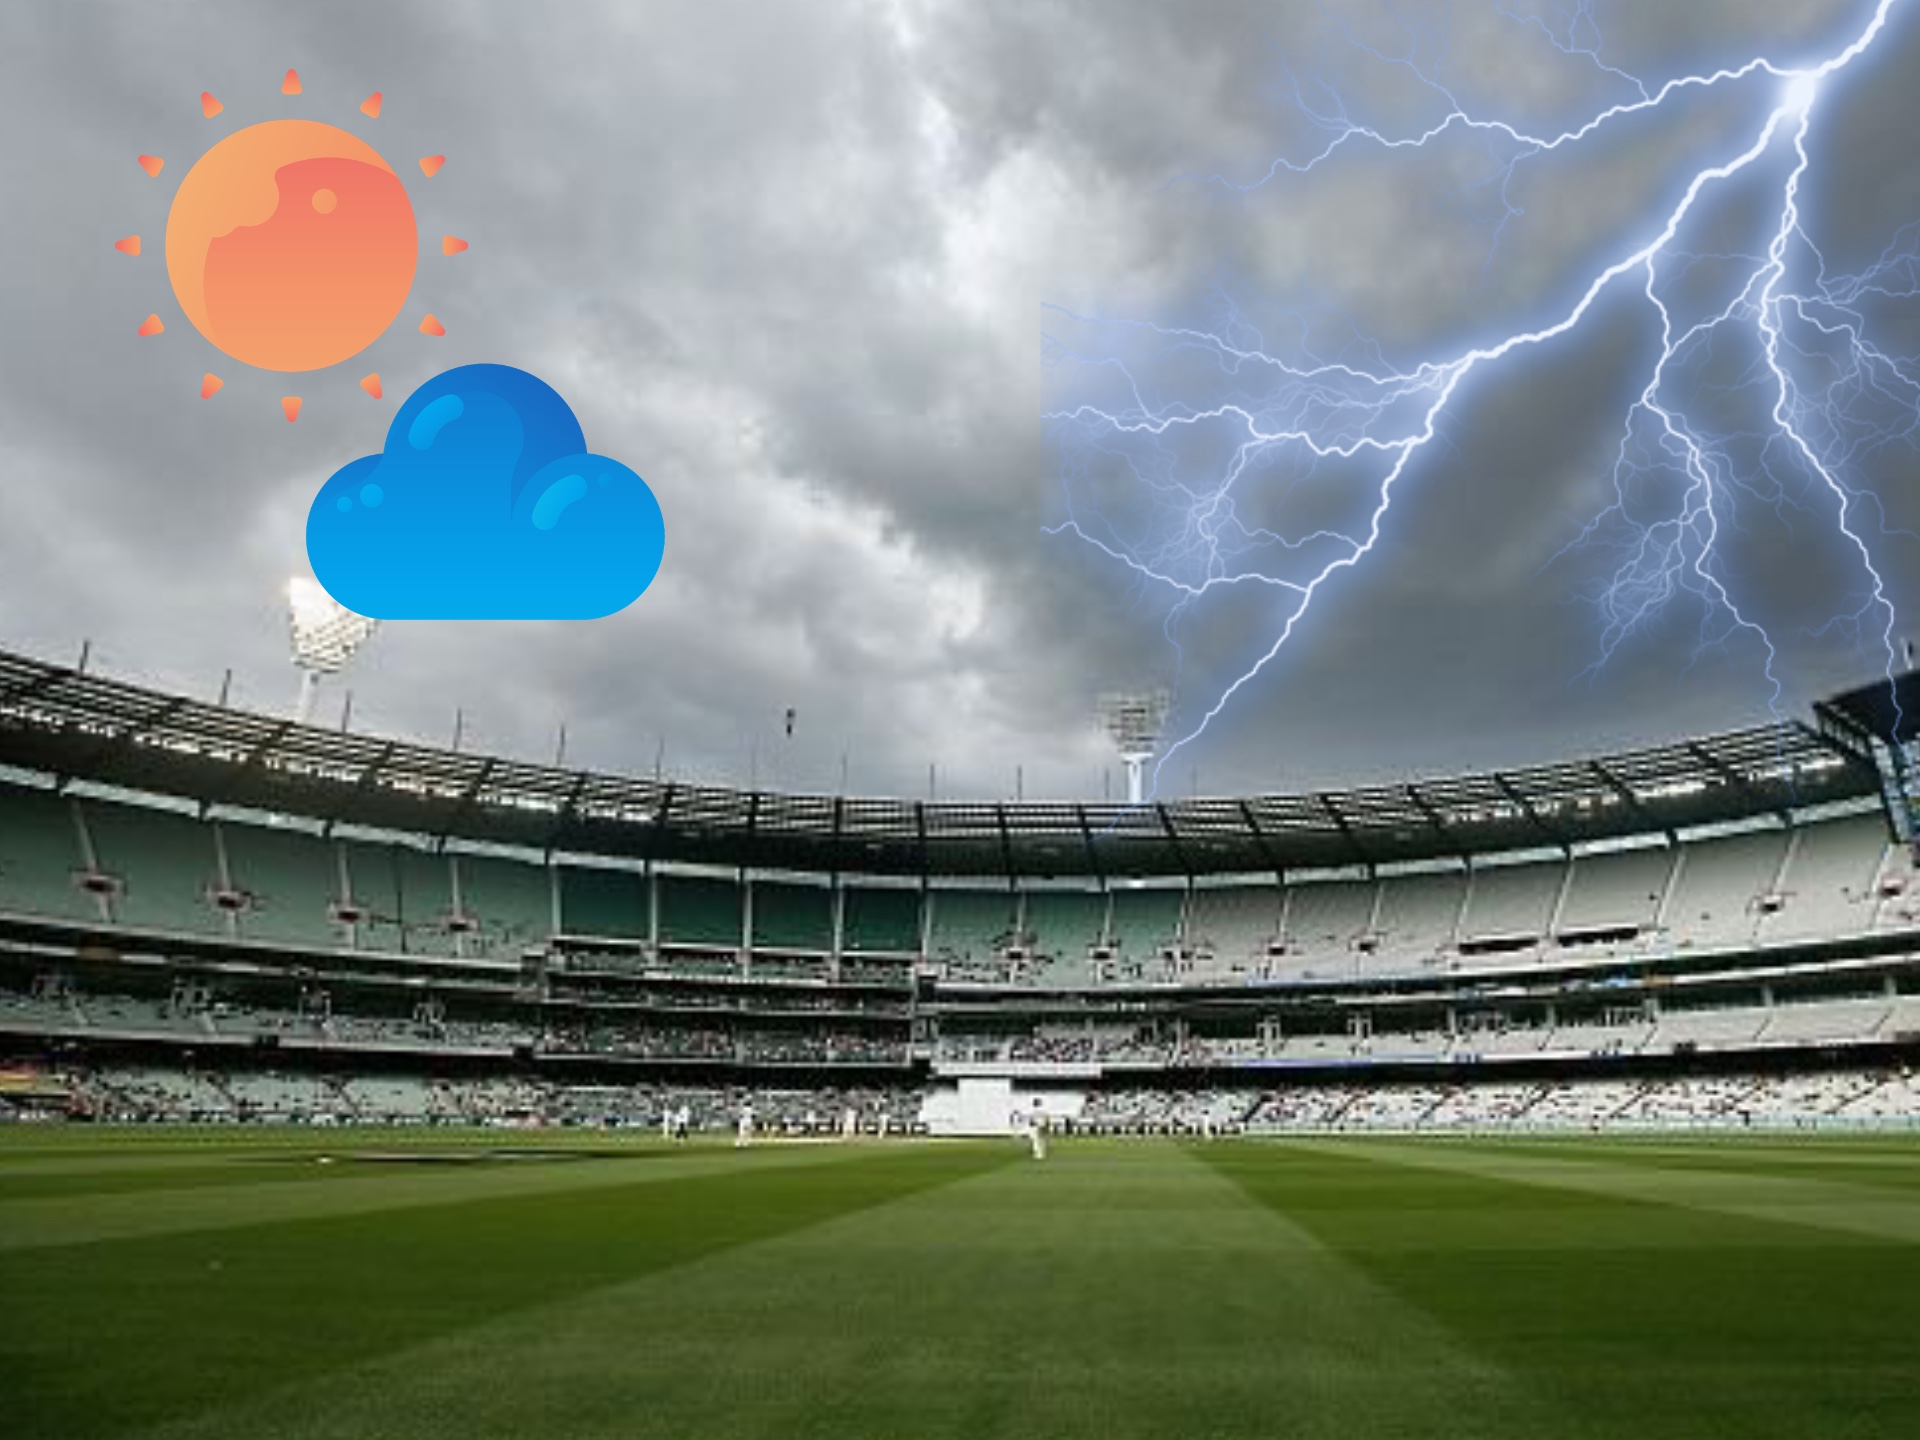 Remember, that weather changes can change a cricket game's results.